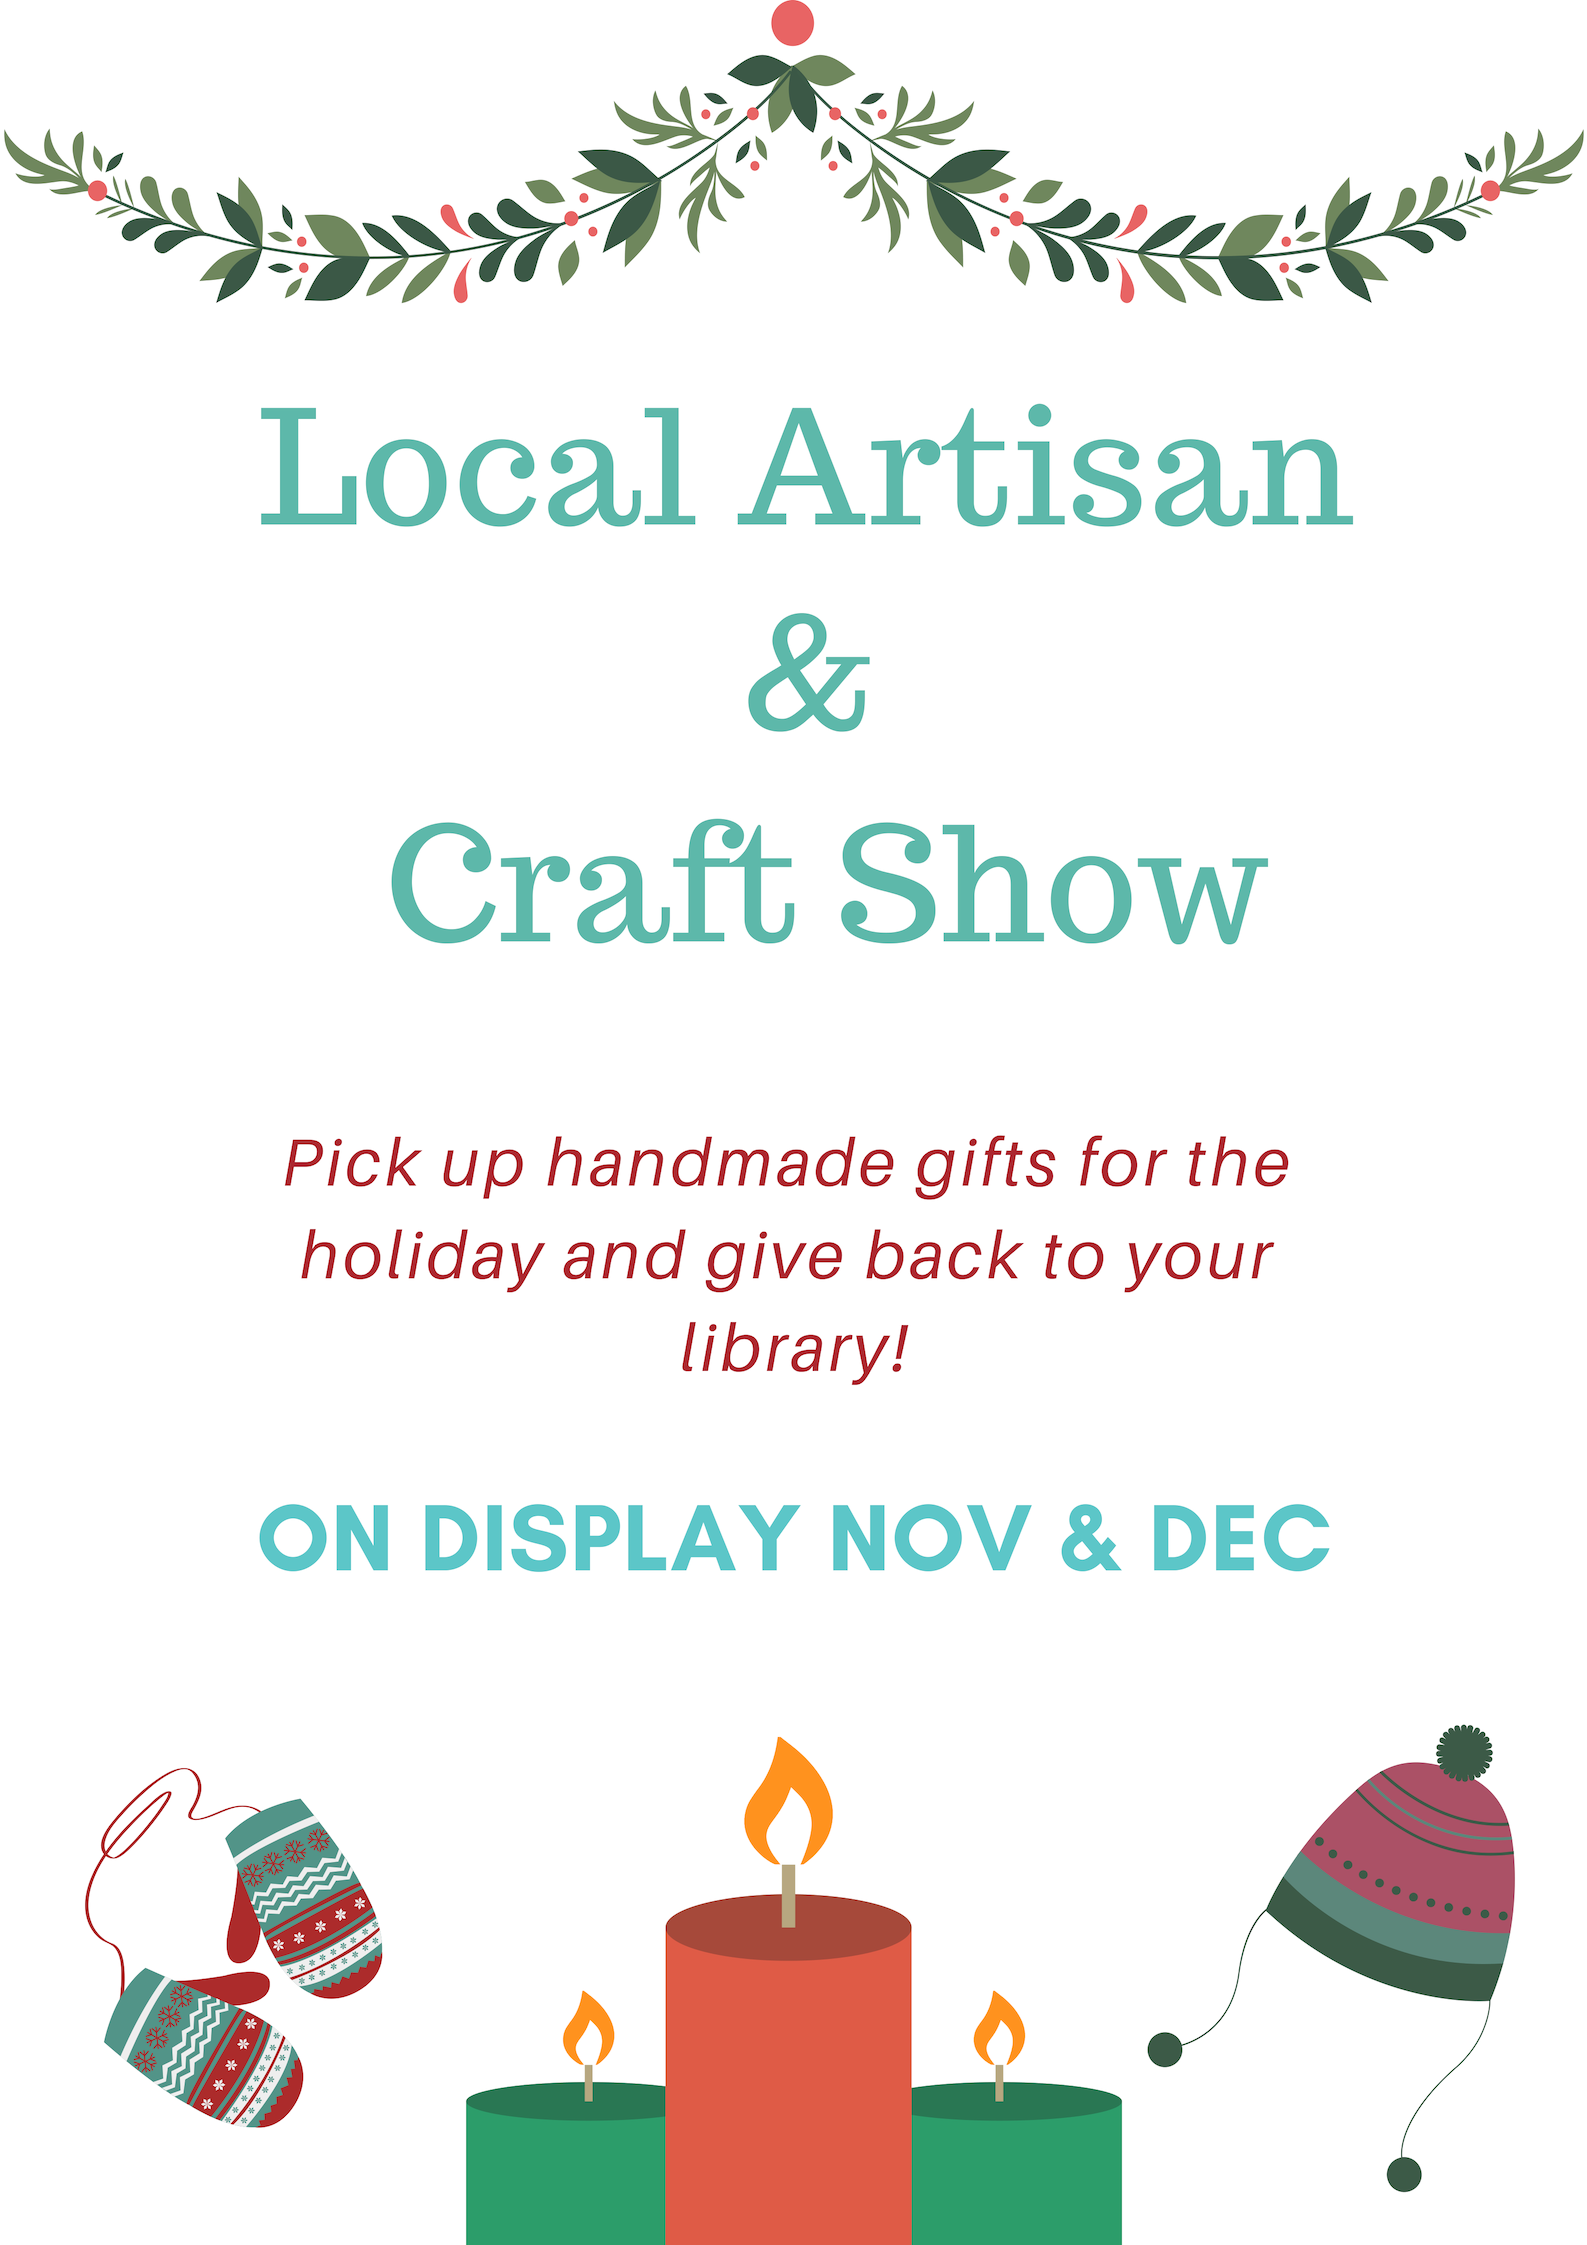 Dimmick Memorial Library Local Artisan Craft Sale